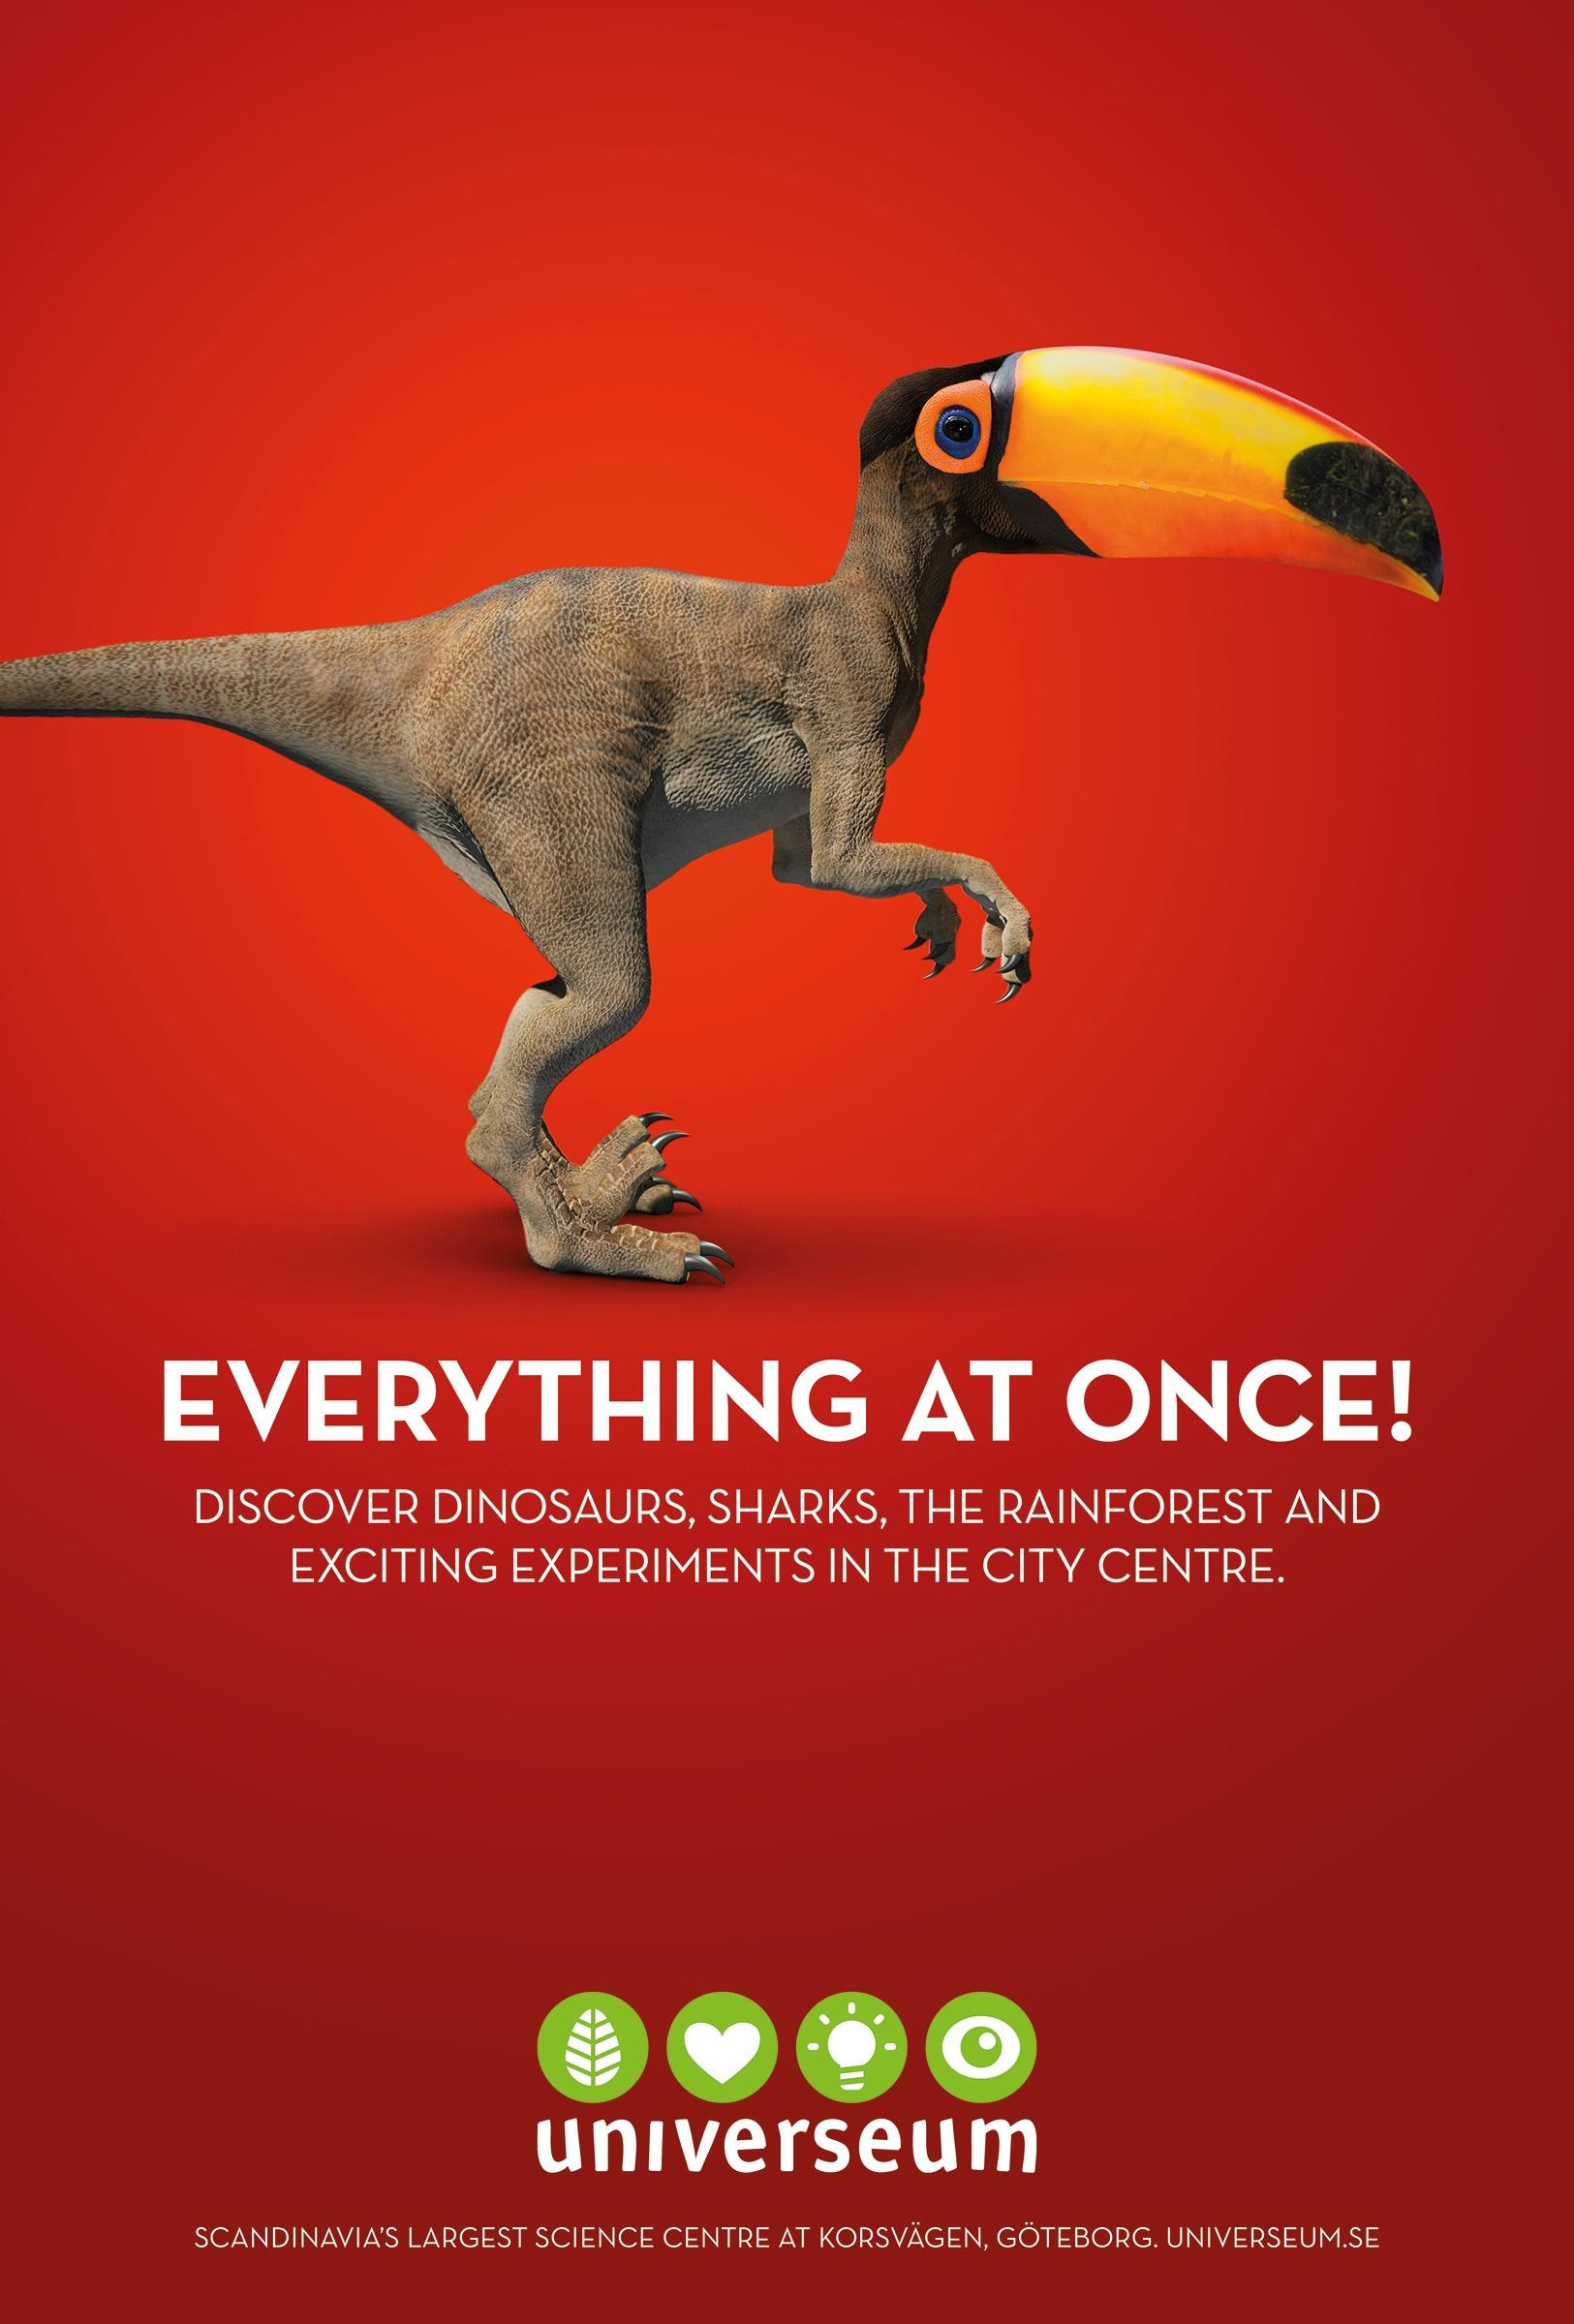 Universeum Outdoor Ad -  Everything at Once, 3